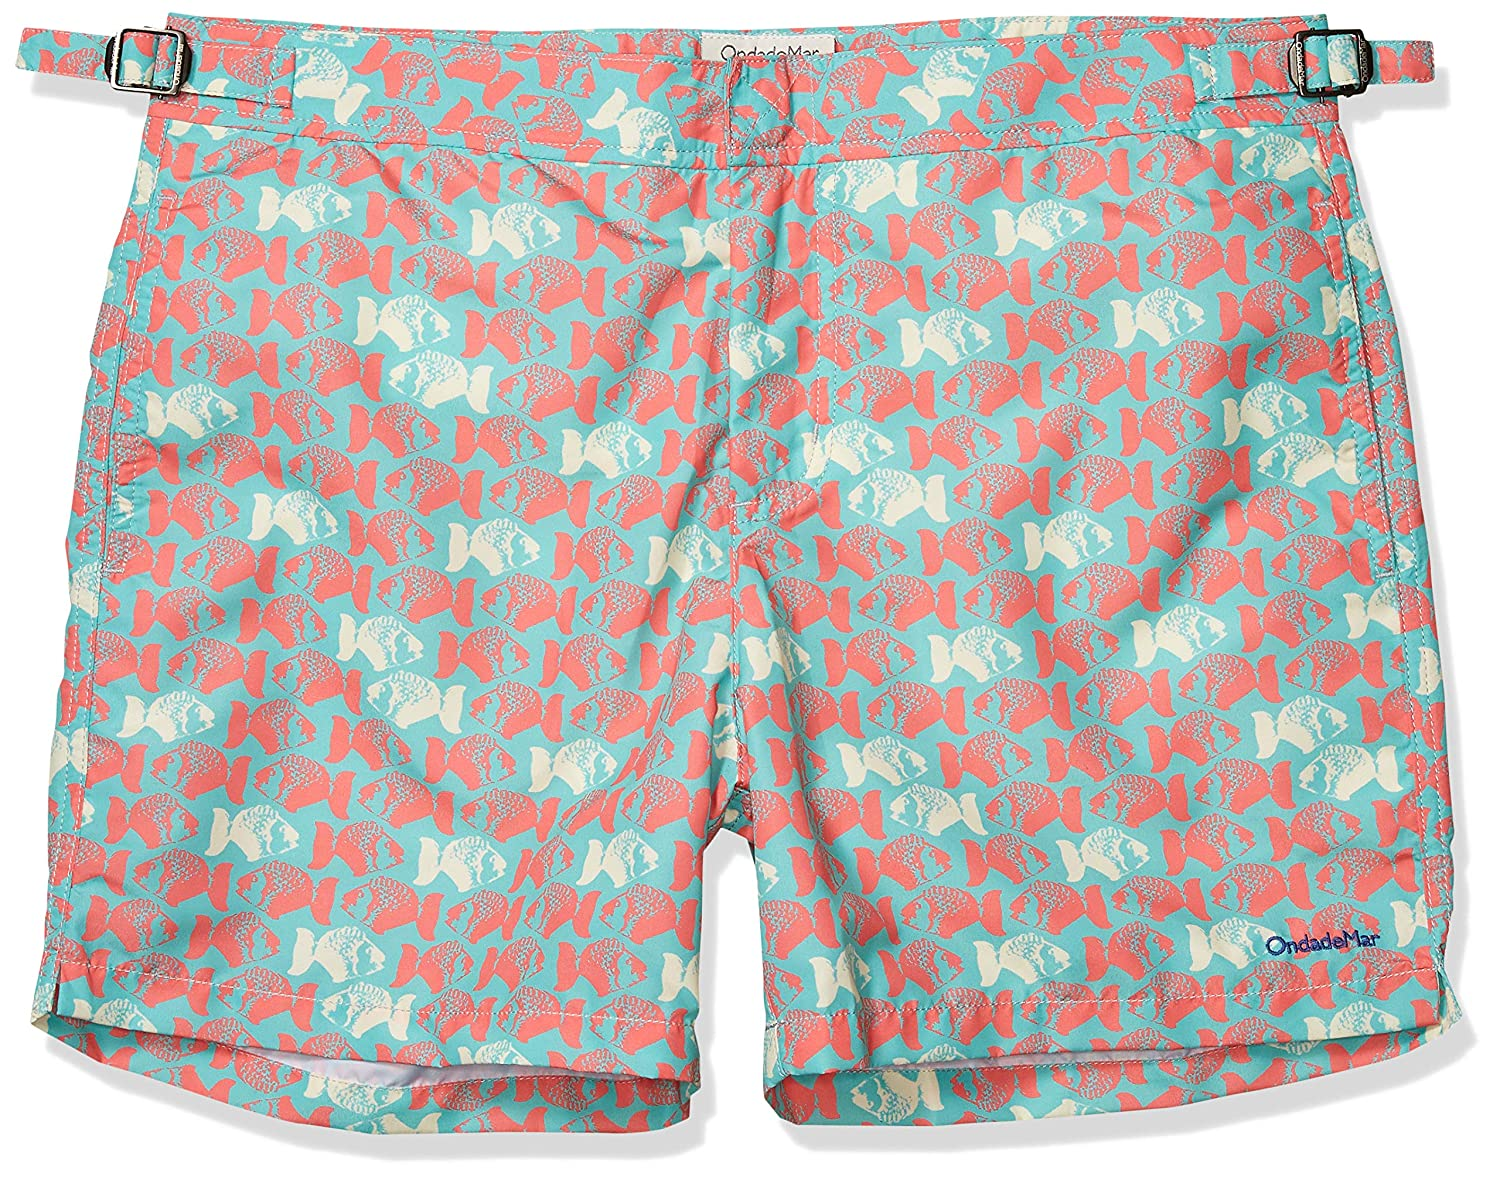 Vintage Men's Swimsuits – 1930s to 1970s History OndadeMar Mens Sand Fit Snap Front Printed Fixed Waist Swim Trunk $65.57 AT vintagedancer.com